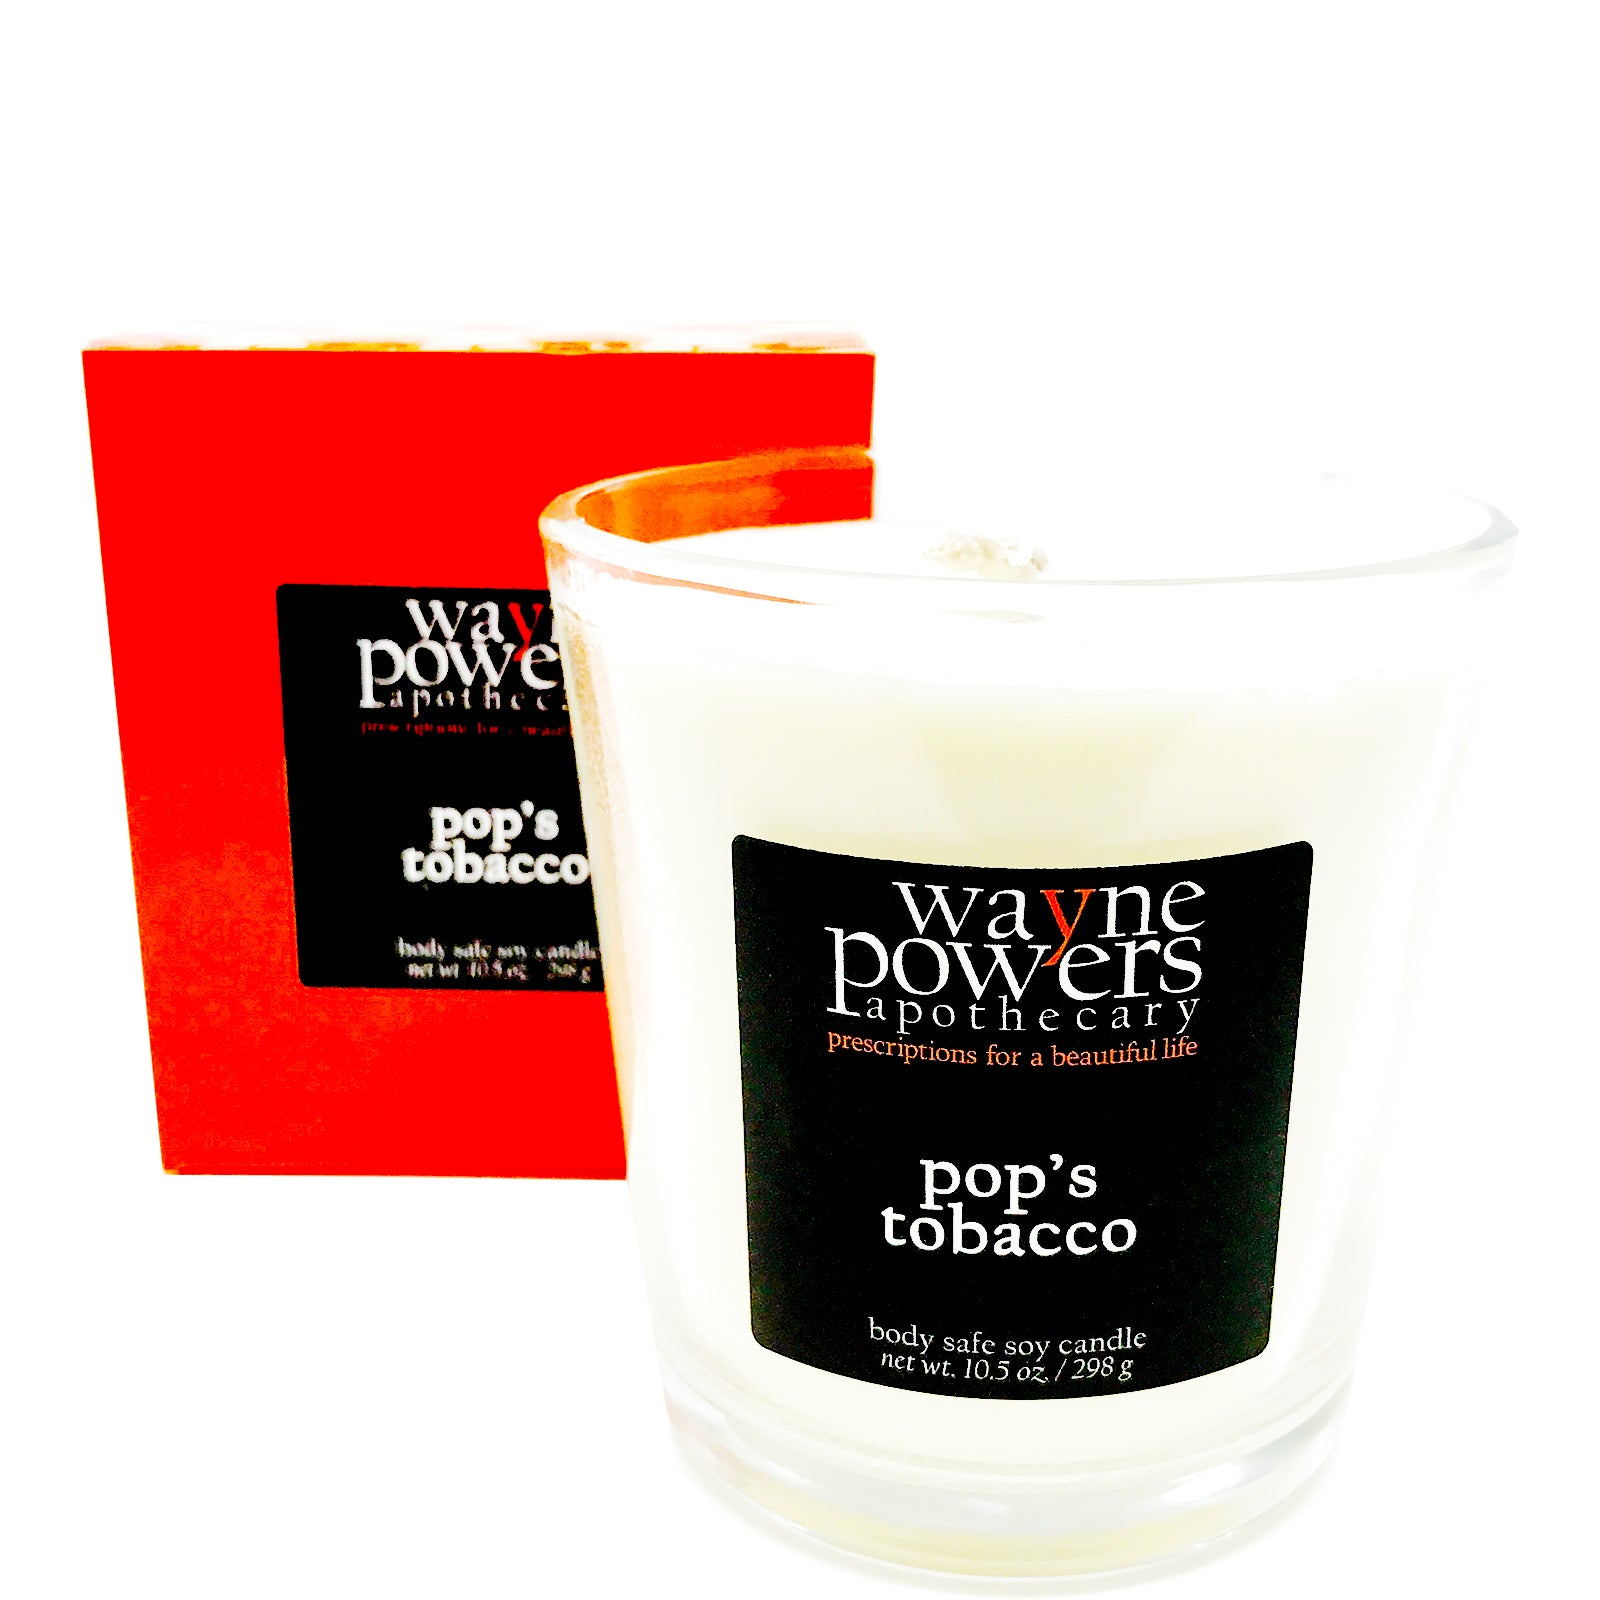 Pop's Tobacco Body Safe Soy Candle by Wayne Powers Apothecary